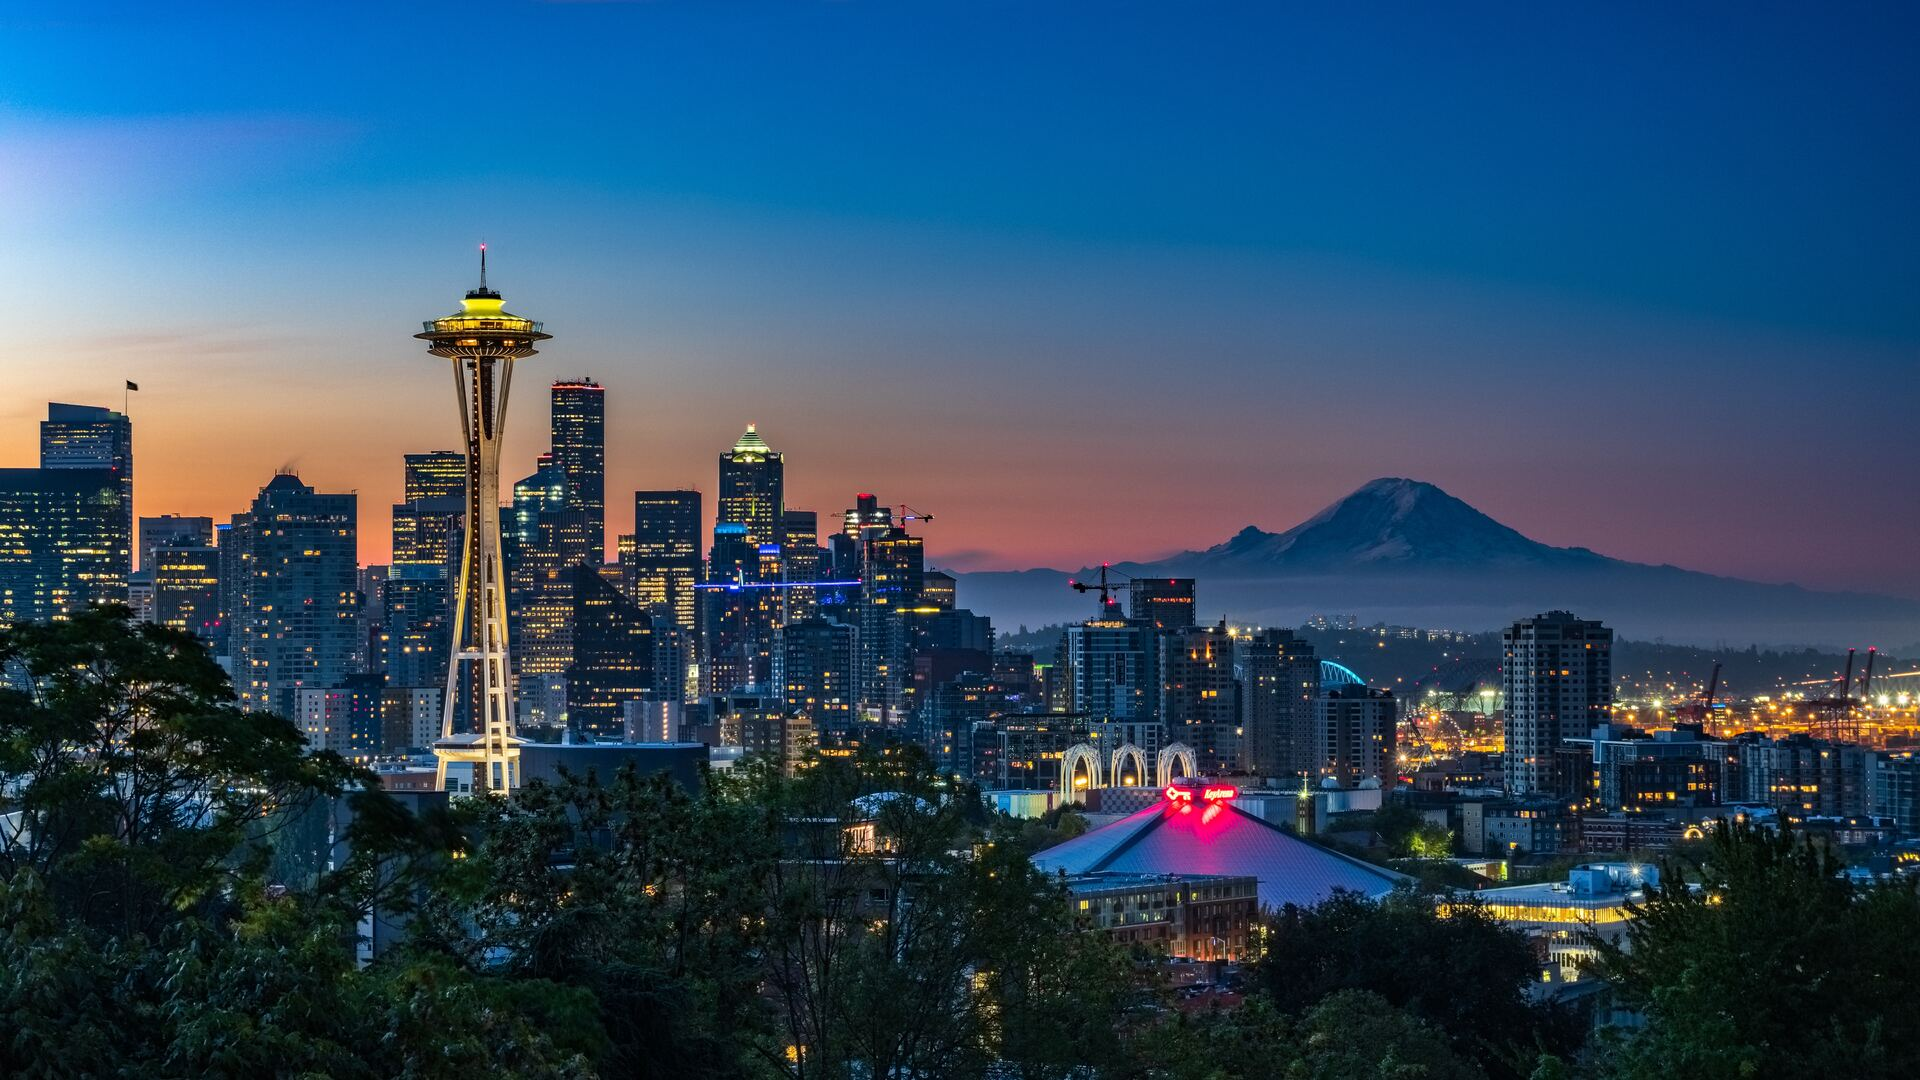 1920x1080 Kerry Park Seattle United States 5k Laptop Full Hd 1080p Hd 4k Wallpapers Images Backgrounds Photos And Pictures